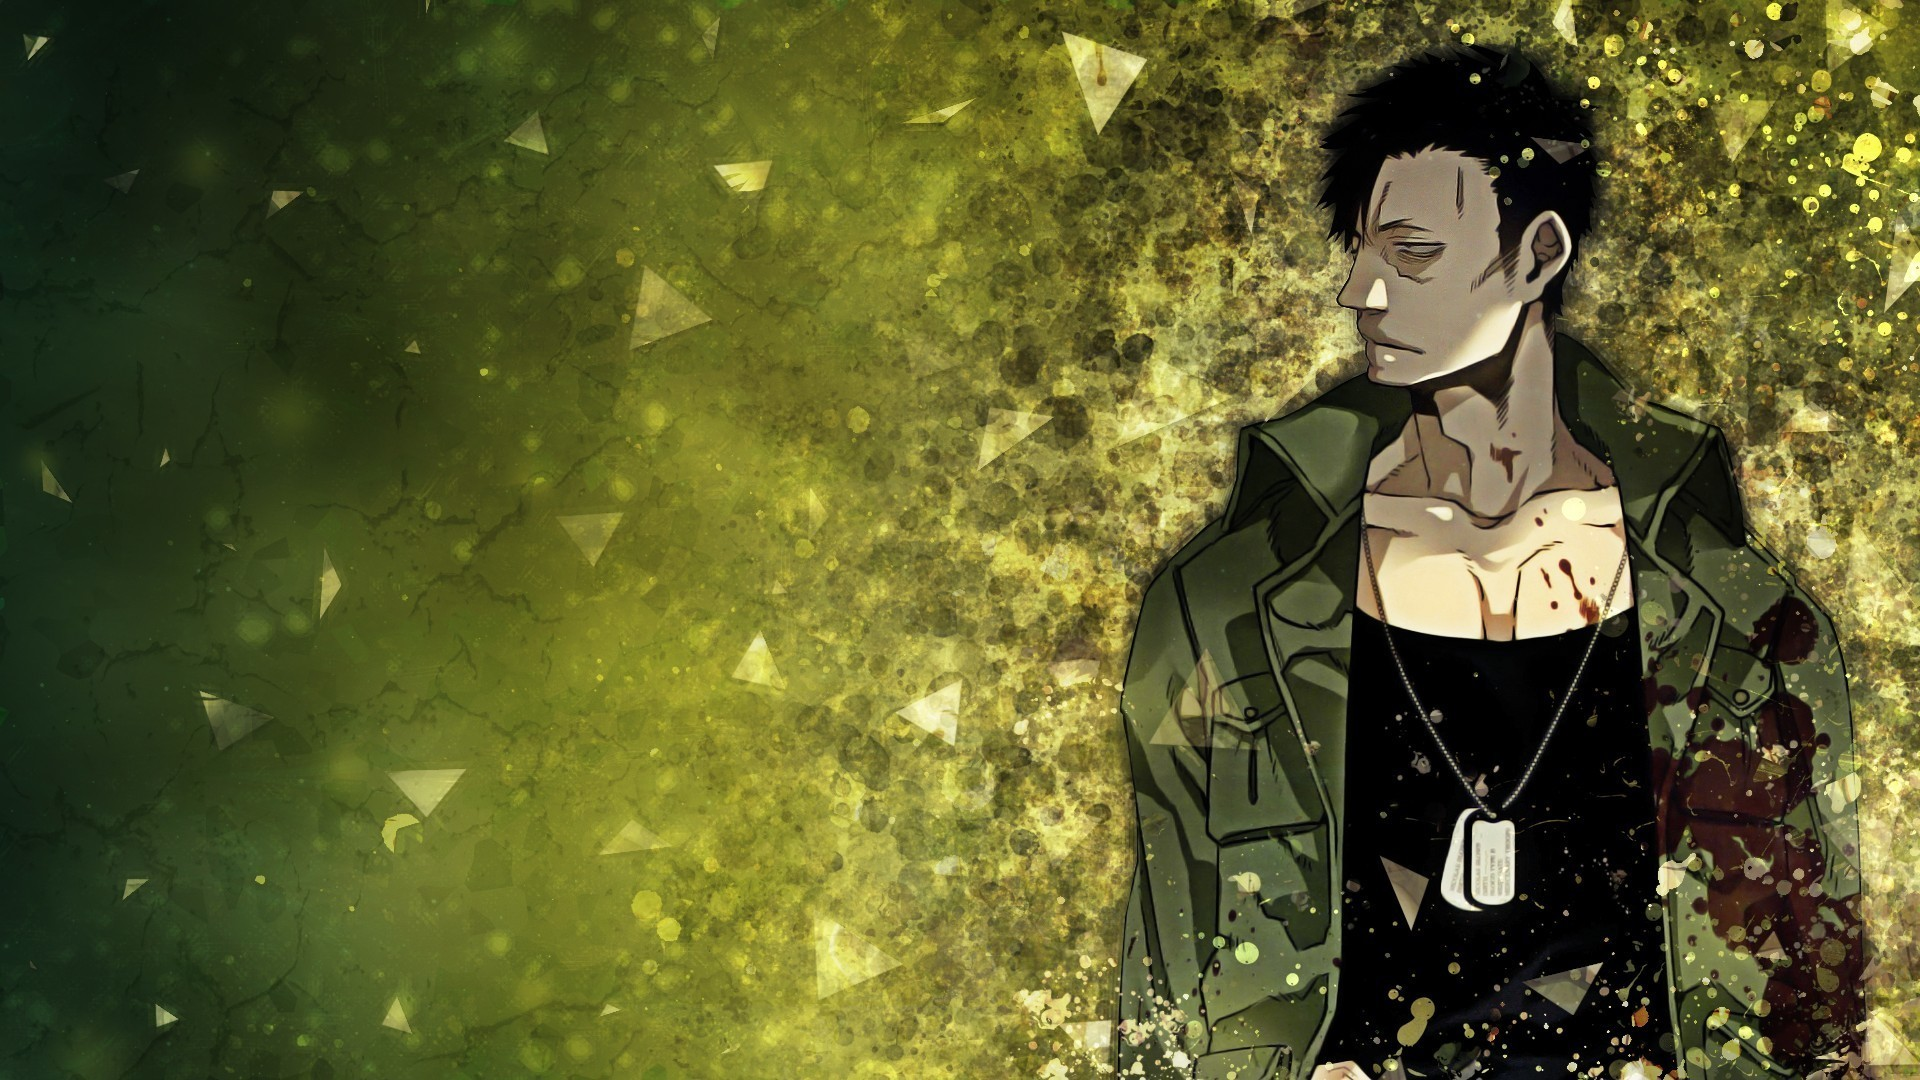 Res: 1920x1080, download-free-gangsta-anime-wal-WTG30511972